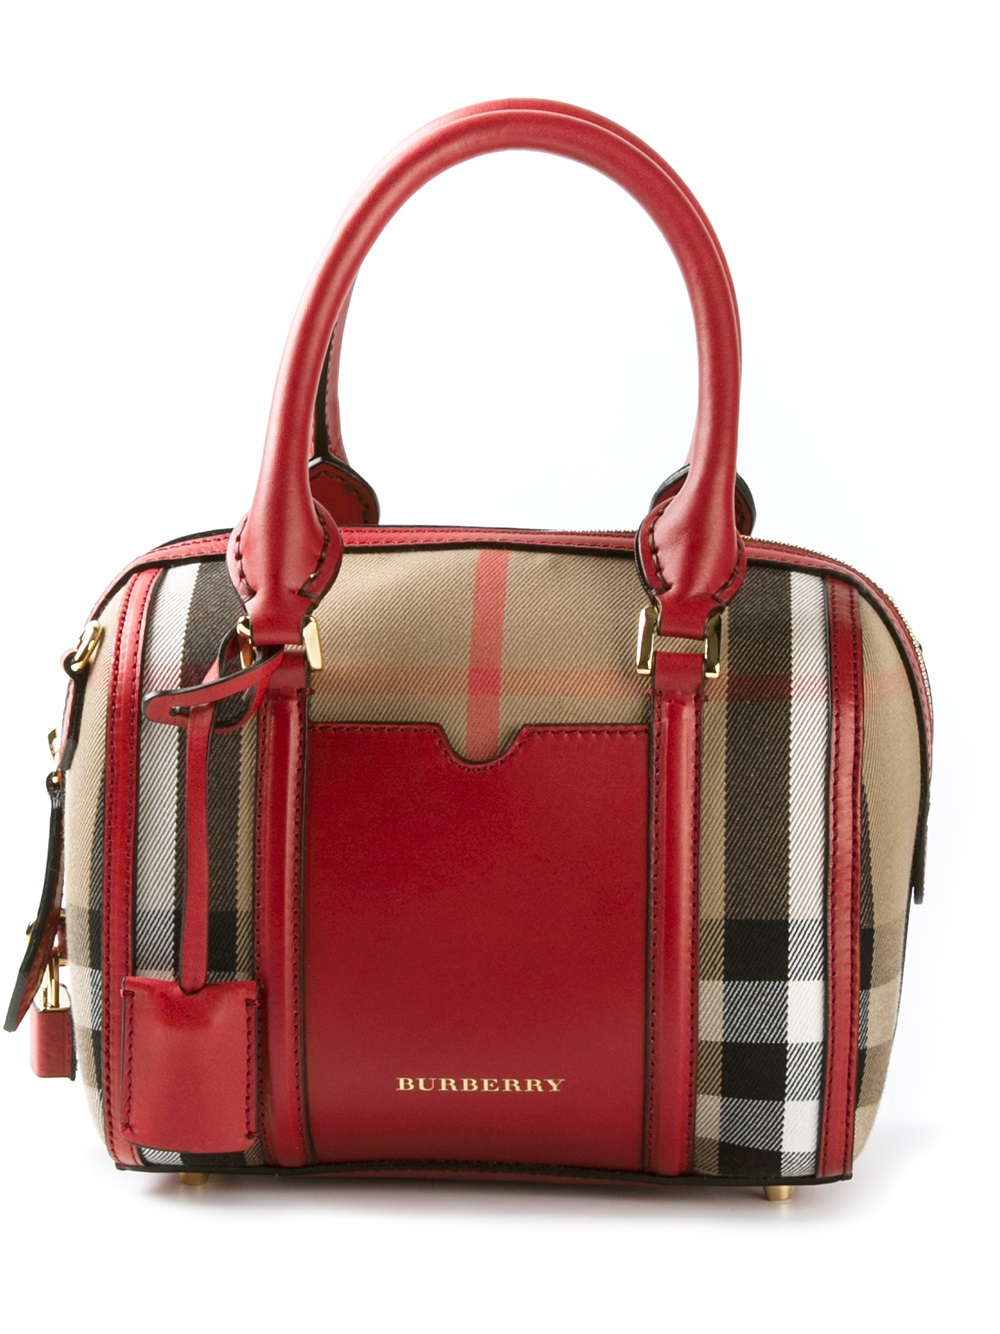 Burberry Sartorial House Check Mini Bowling Bag in Red - Lyst 54015d8b4c